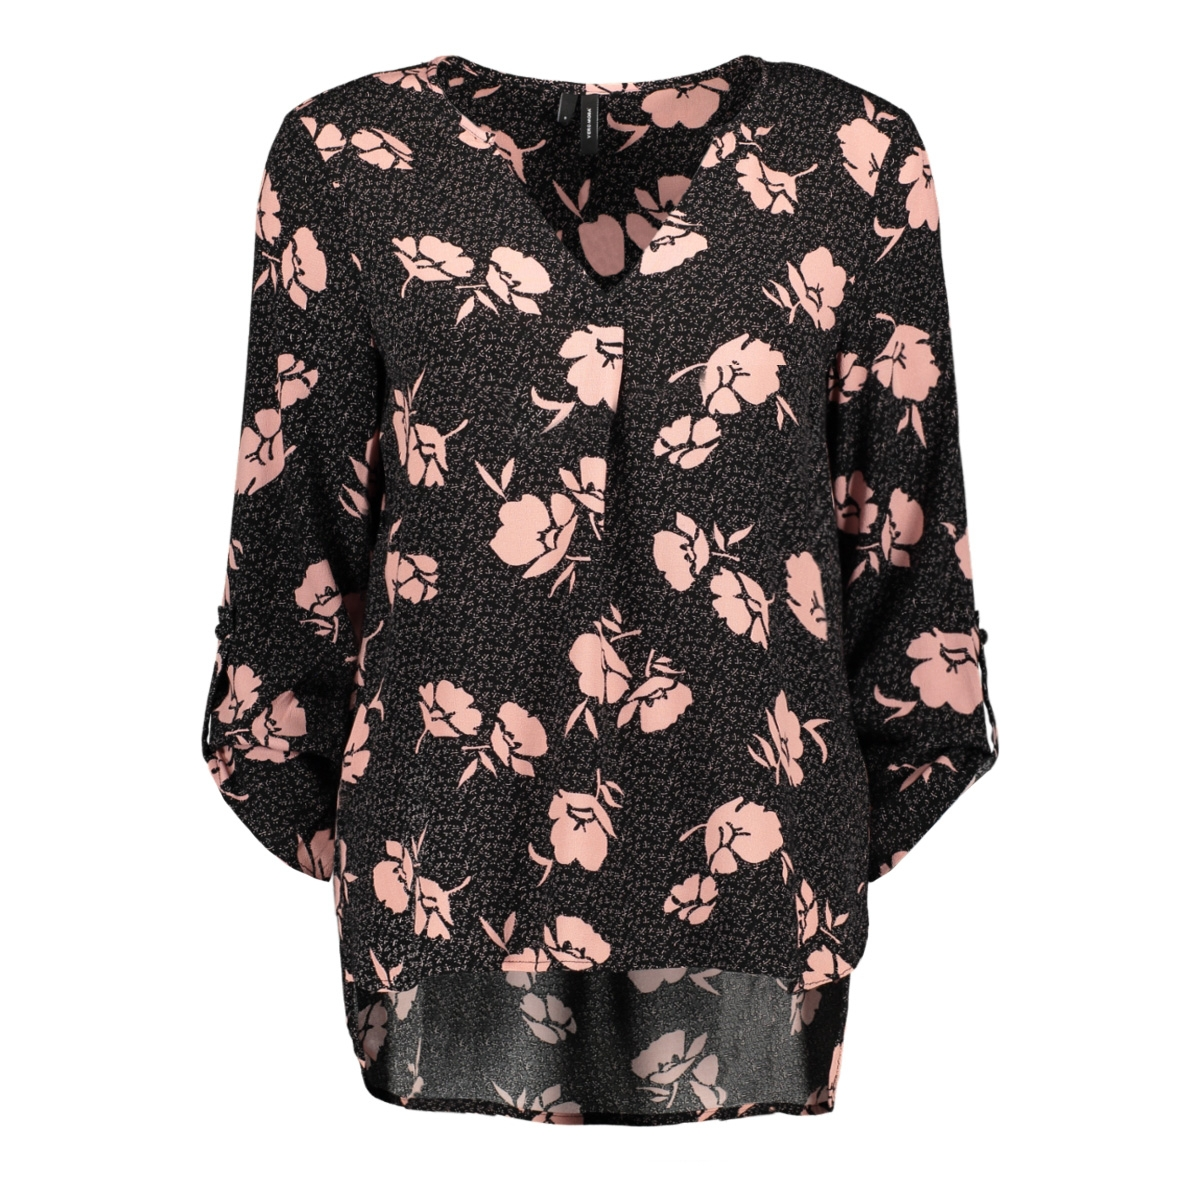 vmamy sabby 7/8 fold-up top vip 10218110 vero moda blouse black/amy